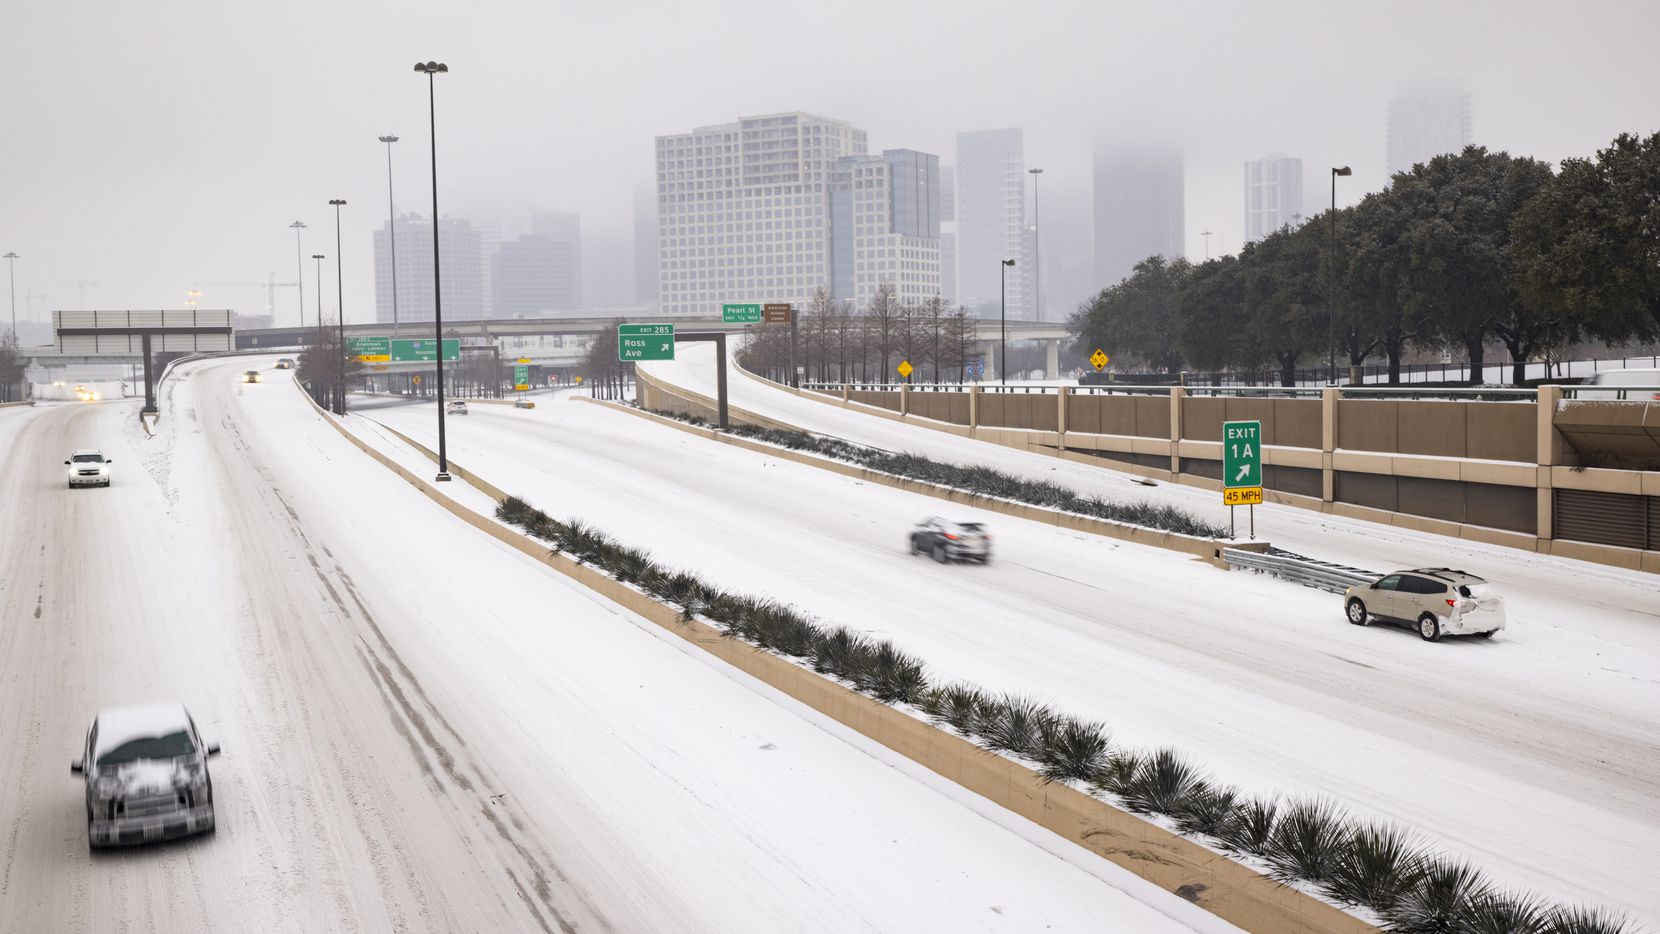 A foggy downtown and stalled car seen on a snowy and icy North Central Expressway in Dallas on Wednesday. Millions of Texans have lost power amid this record-breaking winter storm.